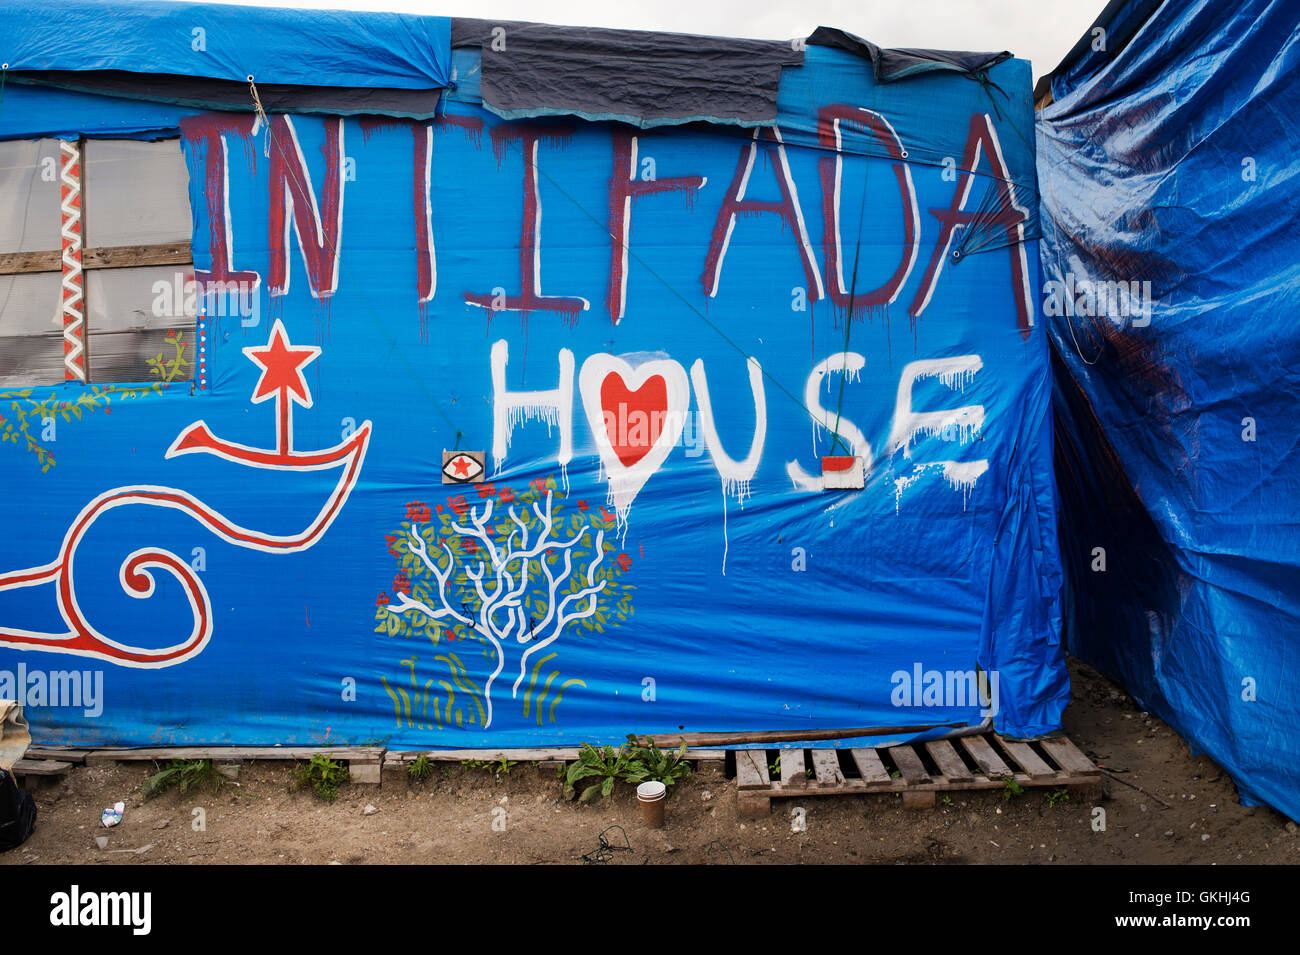 France, Calais. 'Jungle' camp for refugees. Hut with 'Intifada' house written on it. - Stock Image